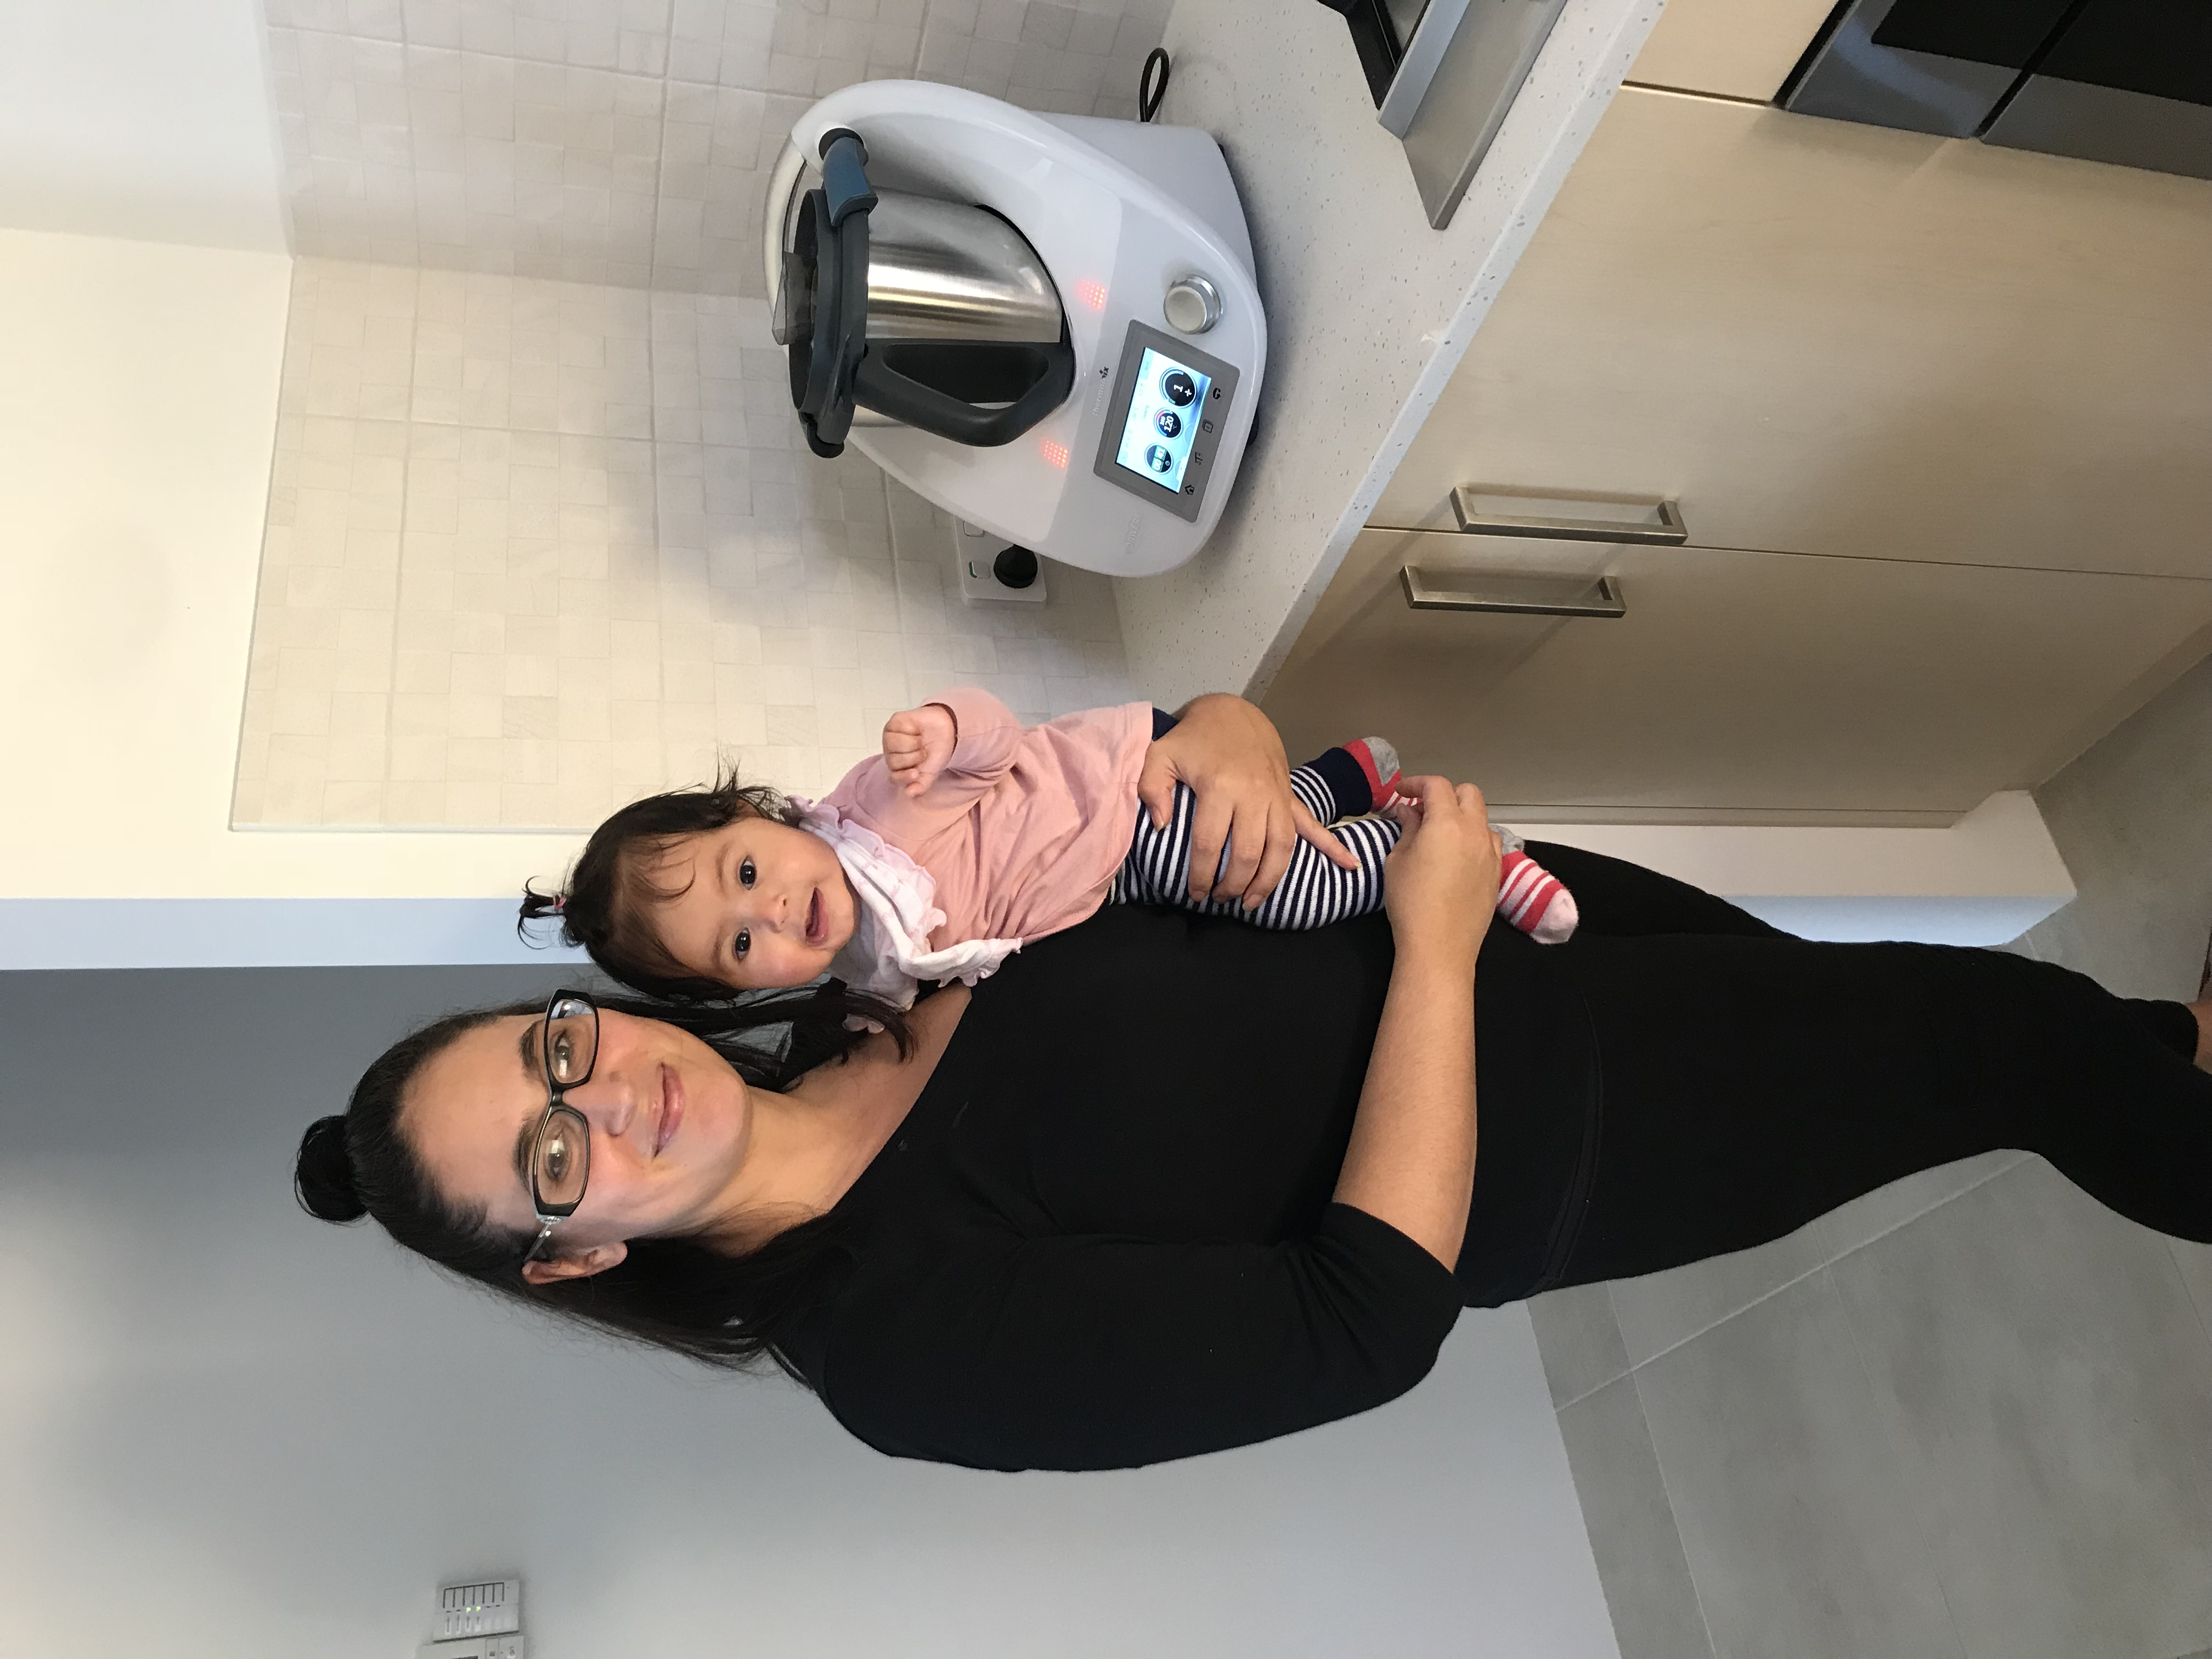 Perth Thermomix consultant delivering a TM5 with her baby